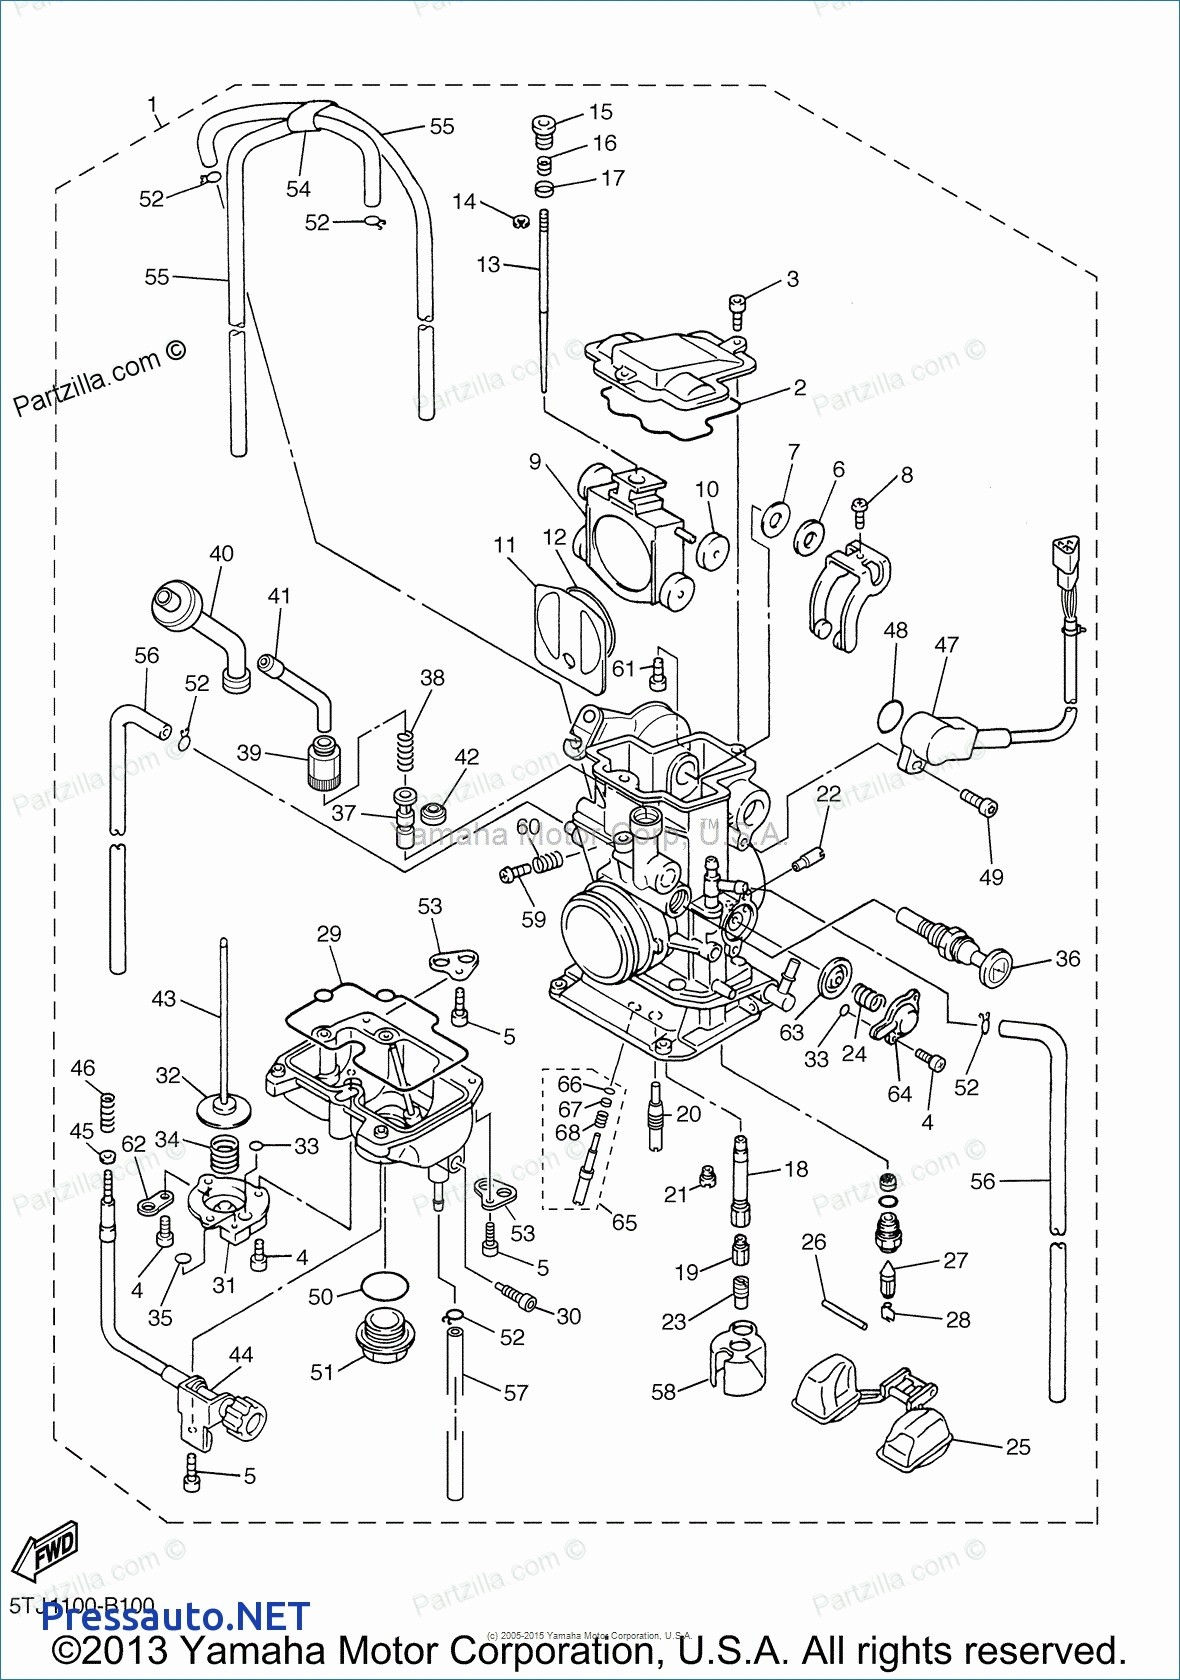 07 Ltr 450 Solenoid Wiring Diagram Trusted Diagrams 1999 Arctic Cat 370 Yfz For 400